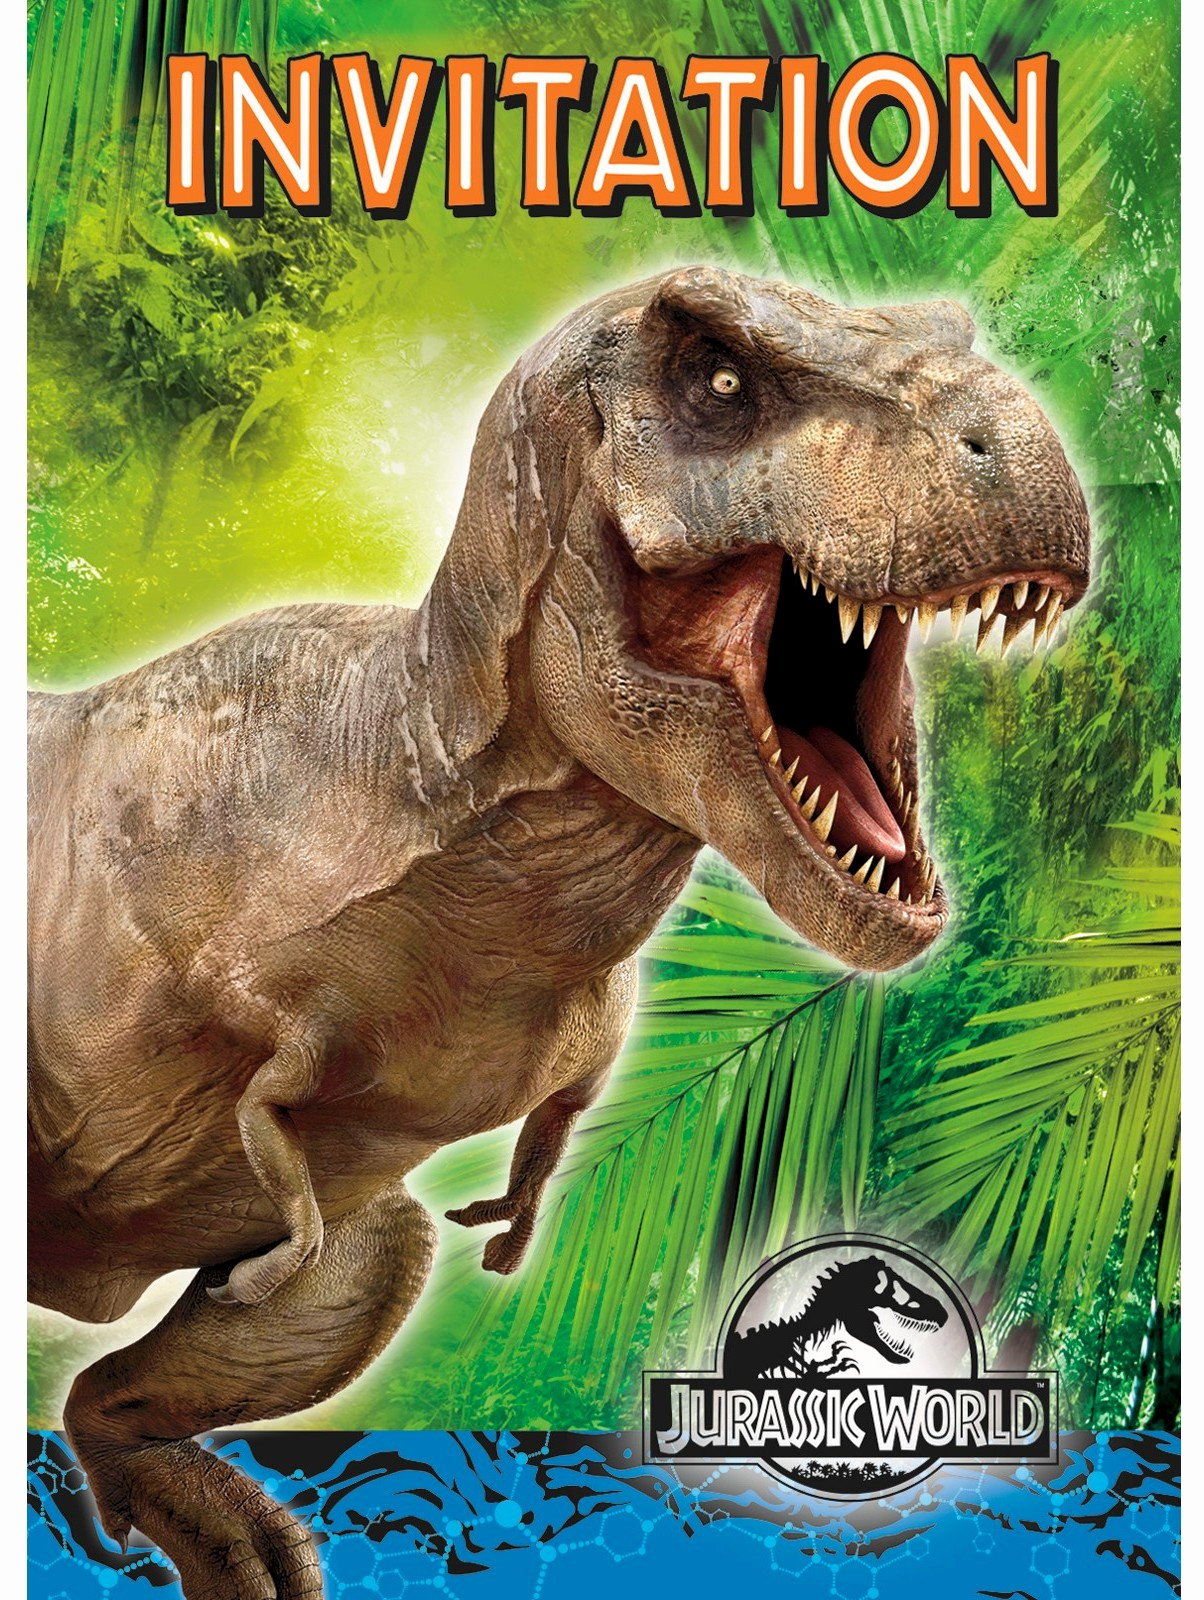 Jurassic World Invitation Template Free New Jurassic World Dinosaur Party Planning Ideas & Supplies